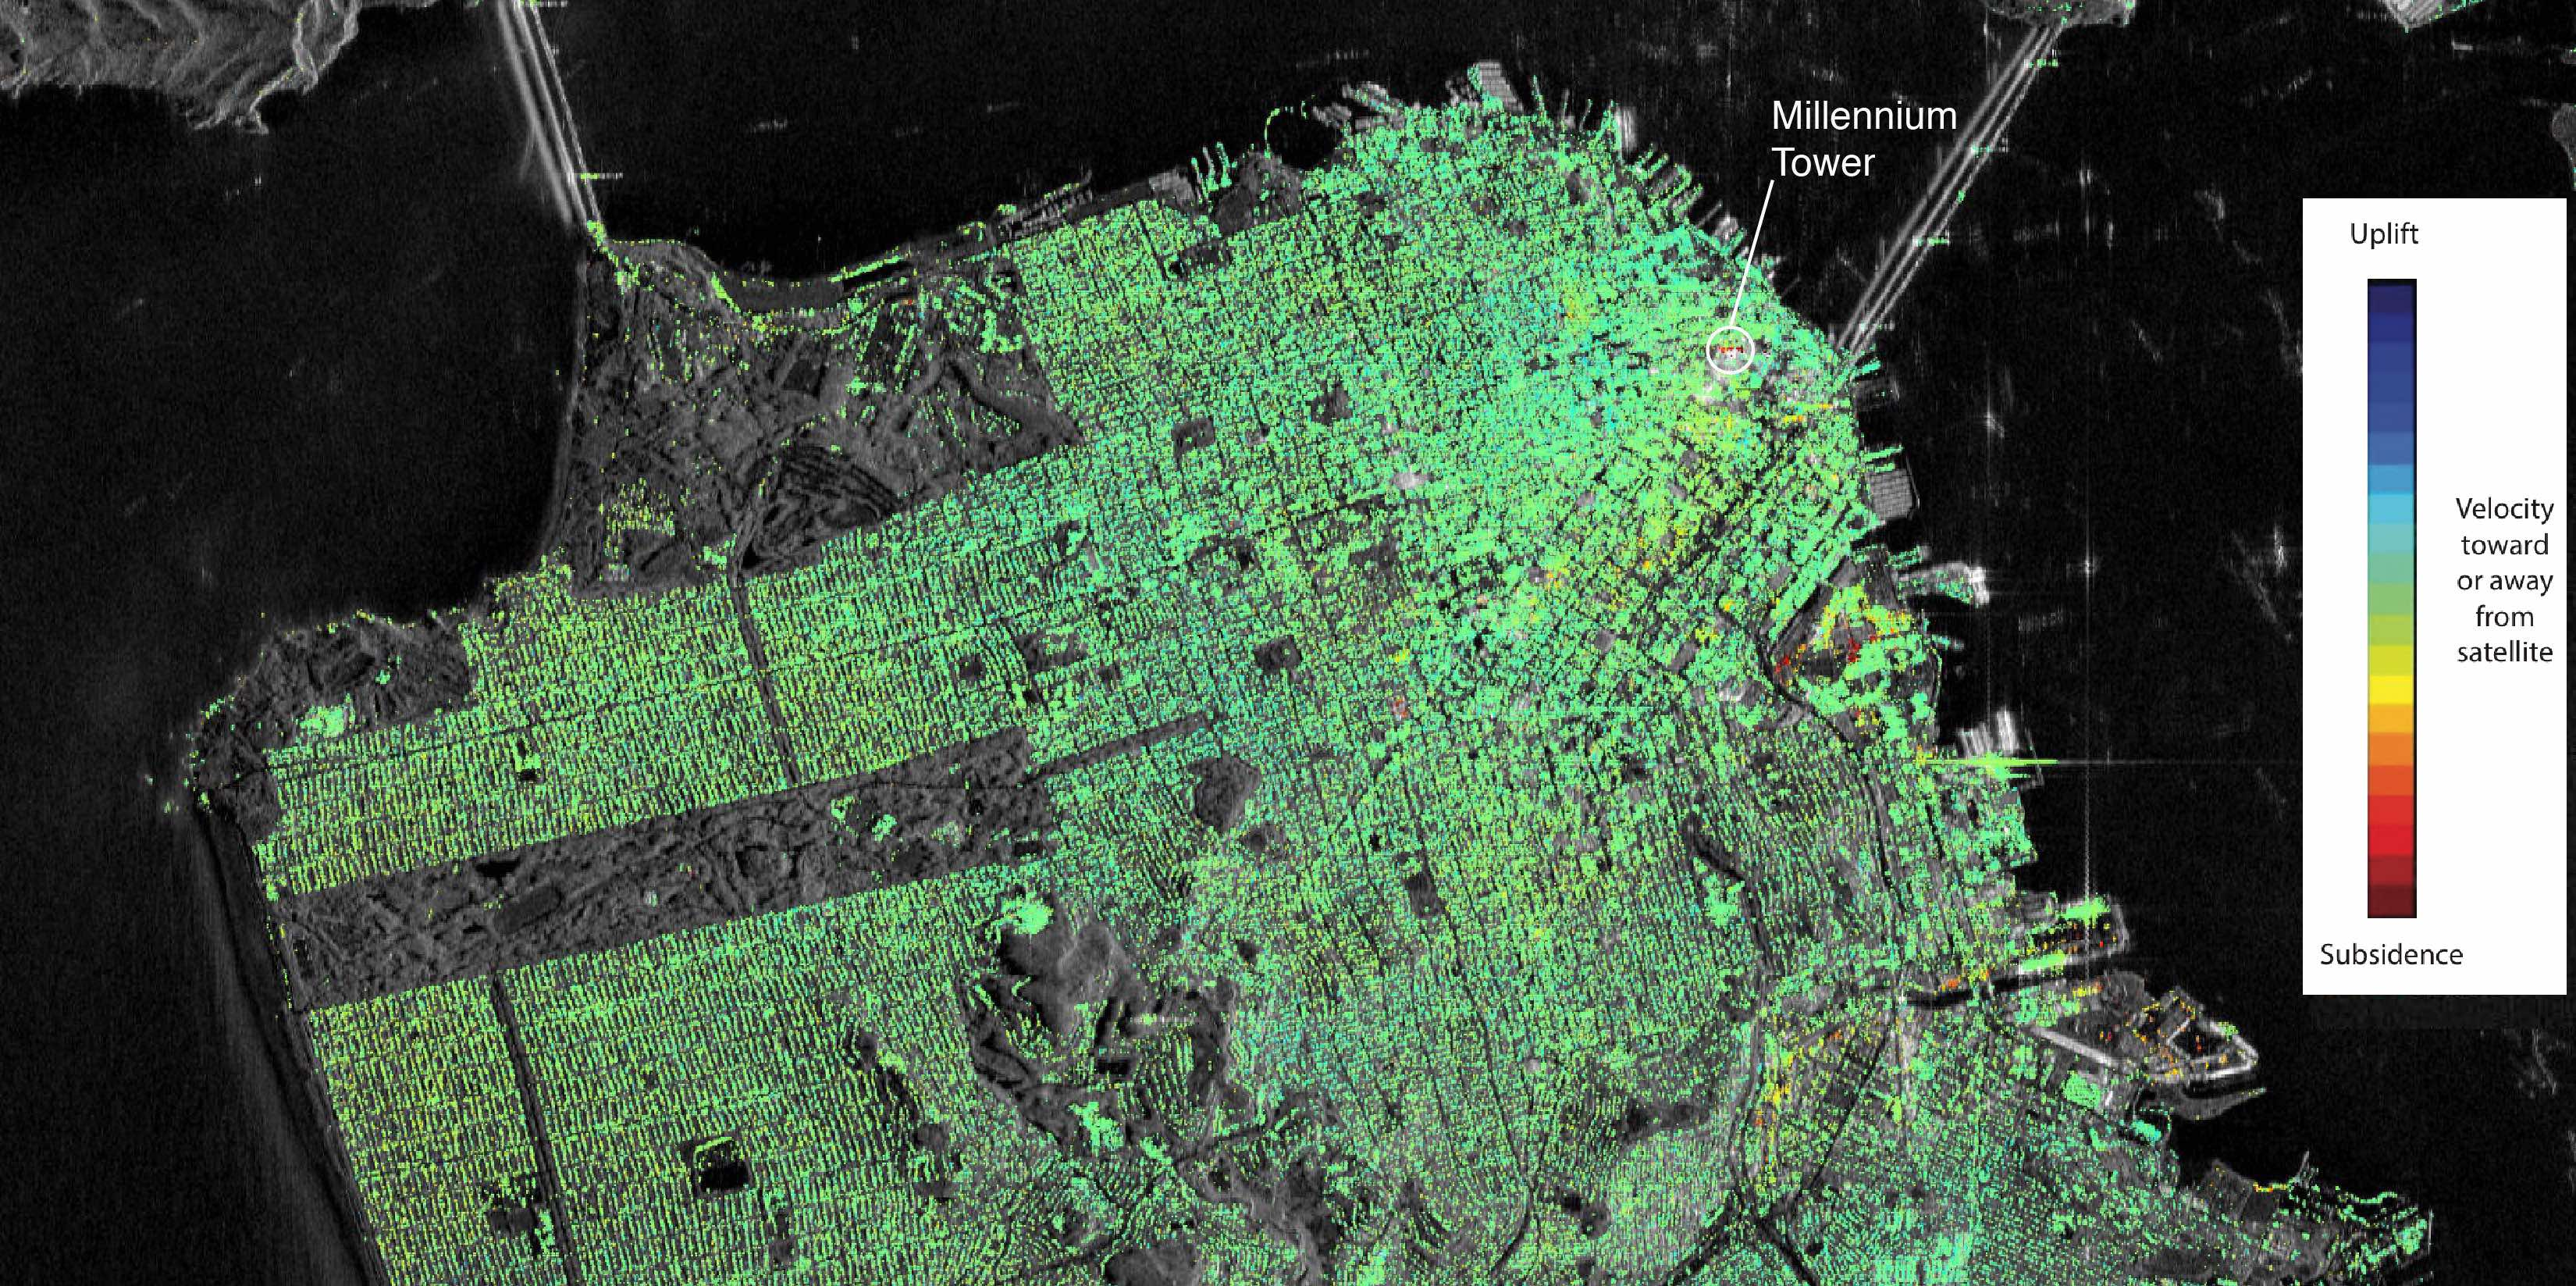 San-francisco-subsidence-uplift-map-millennium-tower